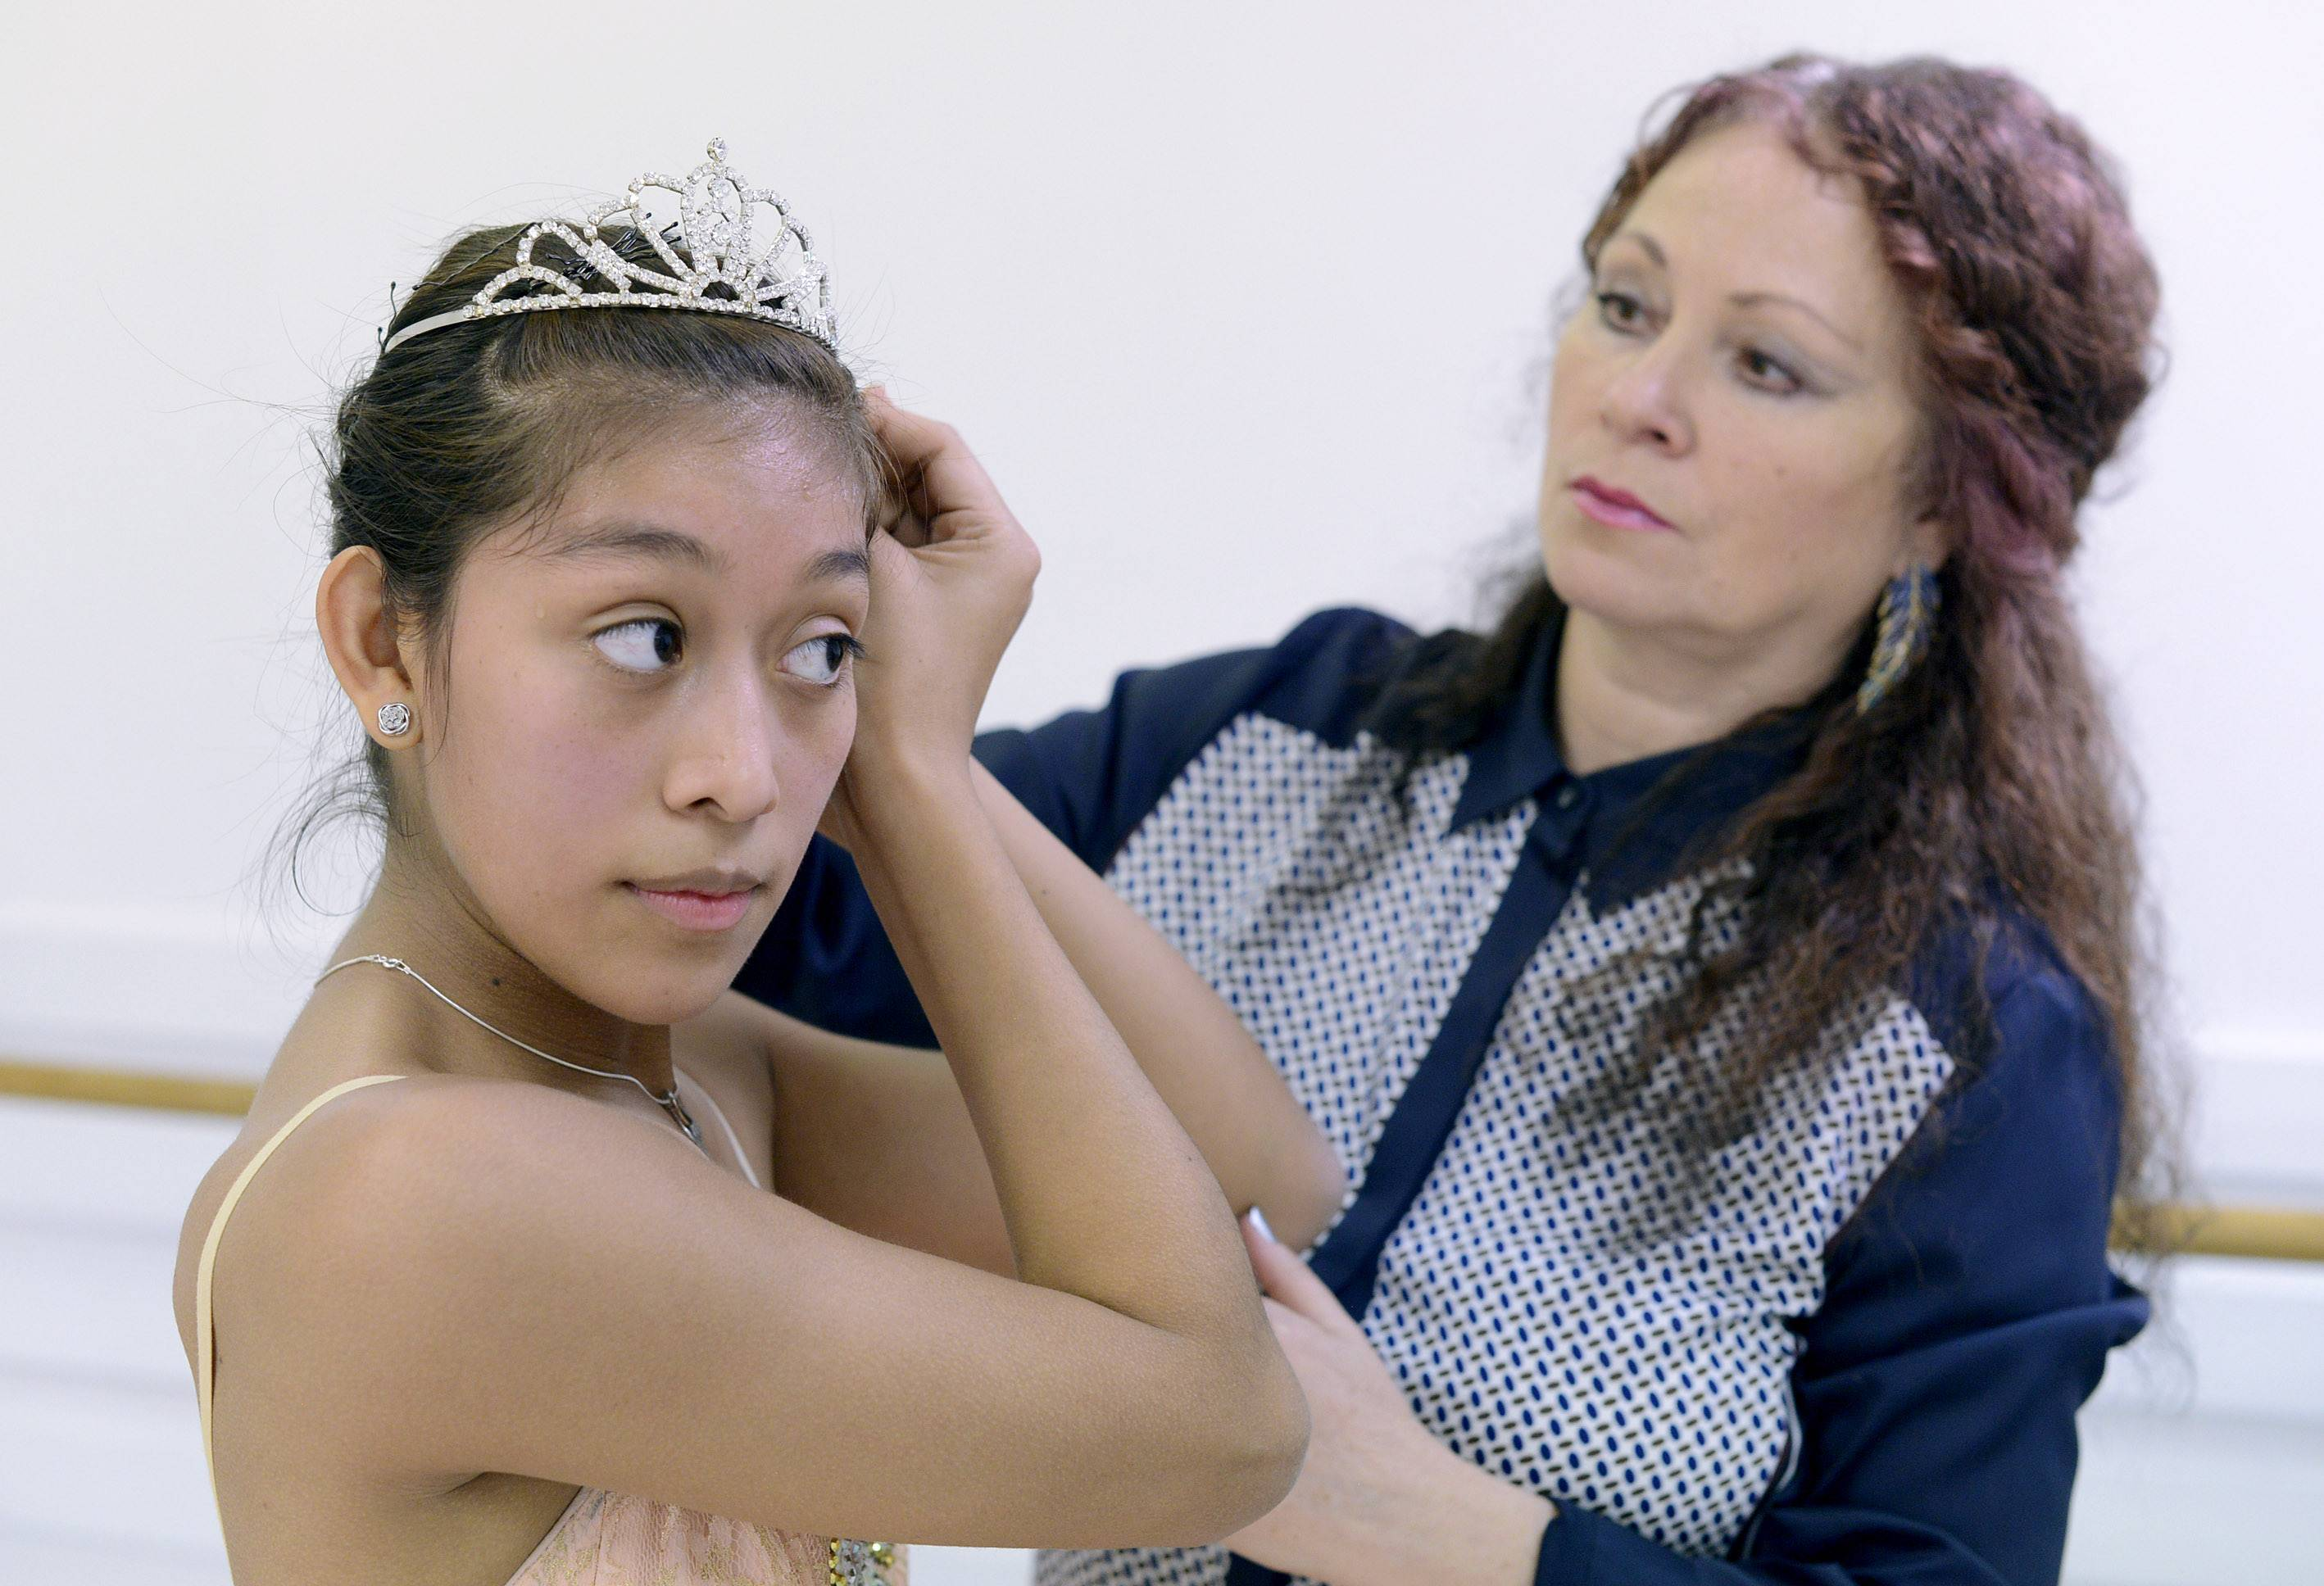 Dancer Jasmine Getz of Sleepy Hollow, a student at Hampshire High School, puts on her tiara after changing into her tutu during class with instructor Tatyana Mazur at the Faubourg School of Ballet in Hanover Park.